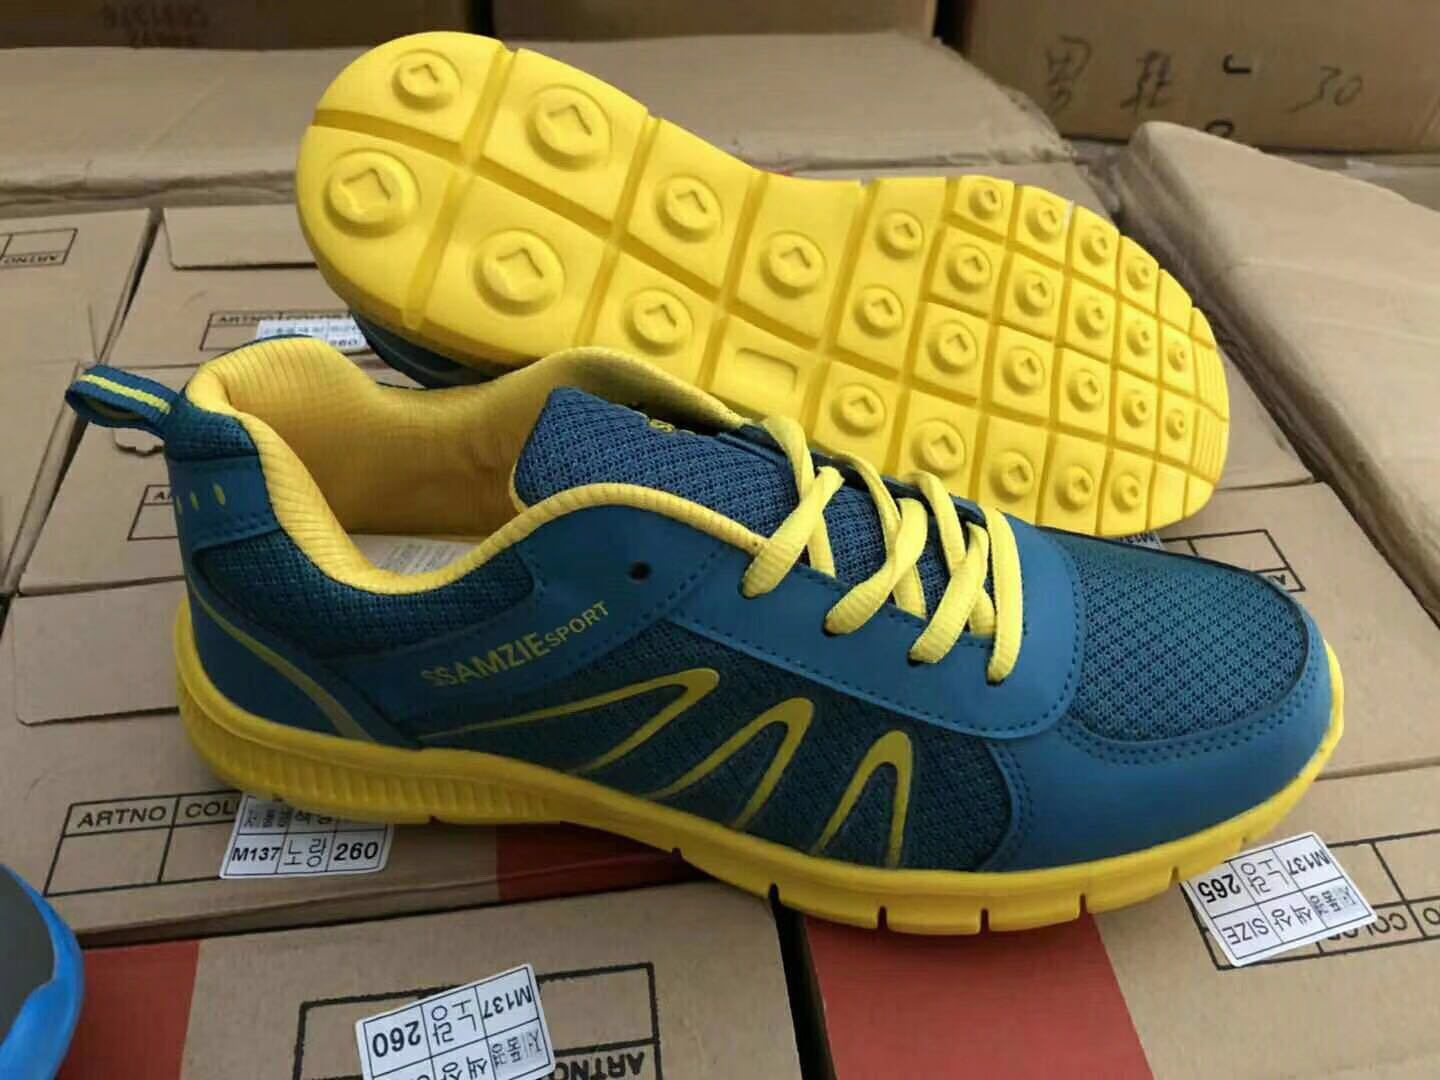 New Stocks for Women and Men′s Sport Shoes, Men′s Shoes, Women and Men′s Casual Shoes, Footwear. Fashion Style for Men′s Shoes. 11000pairs